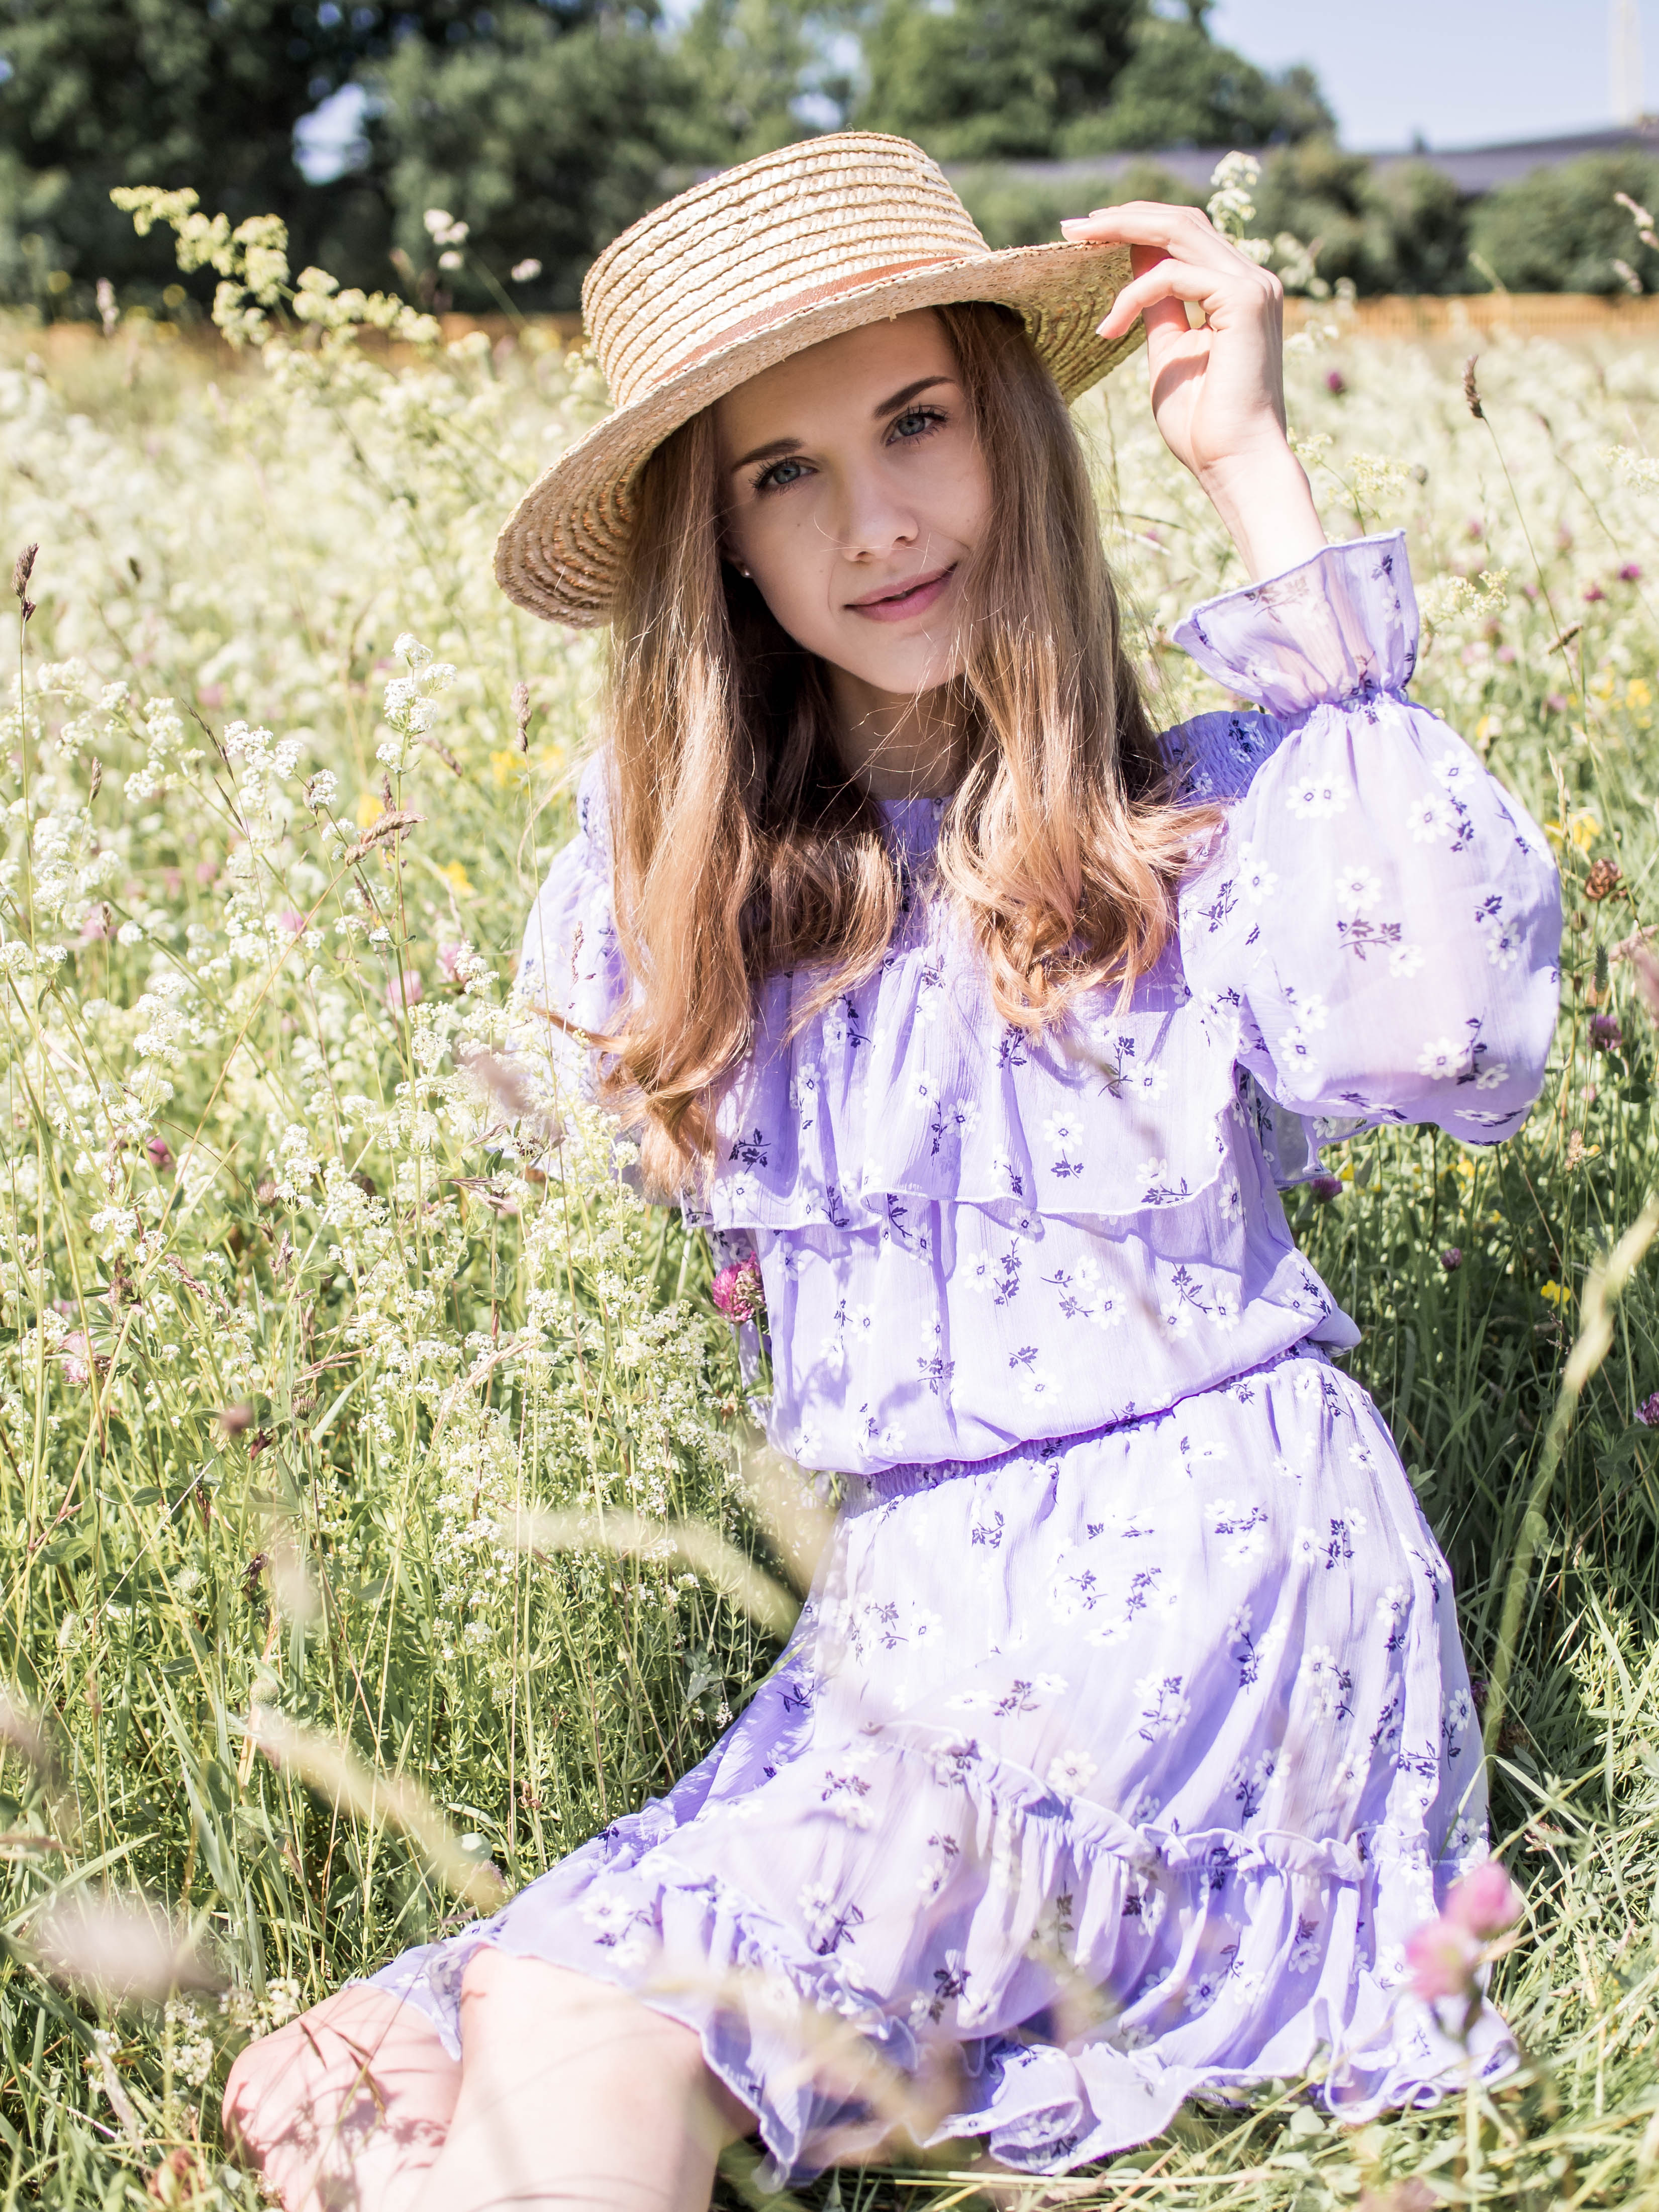 Summer fashion, lavender floral dress - Kesämuoti, laventeli kukkamekko